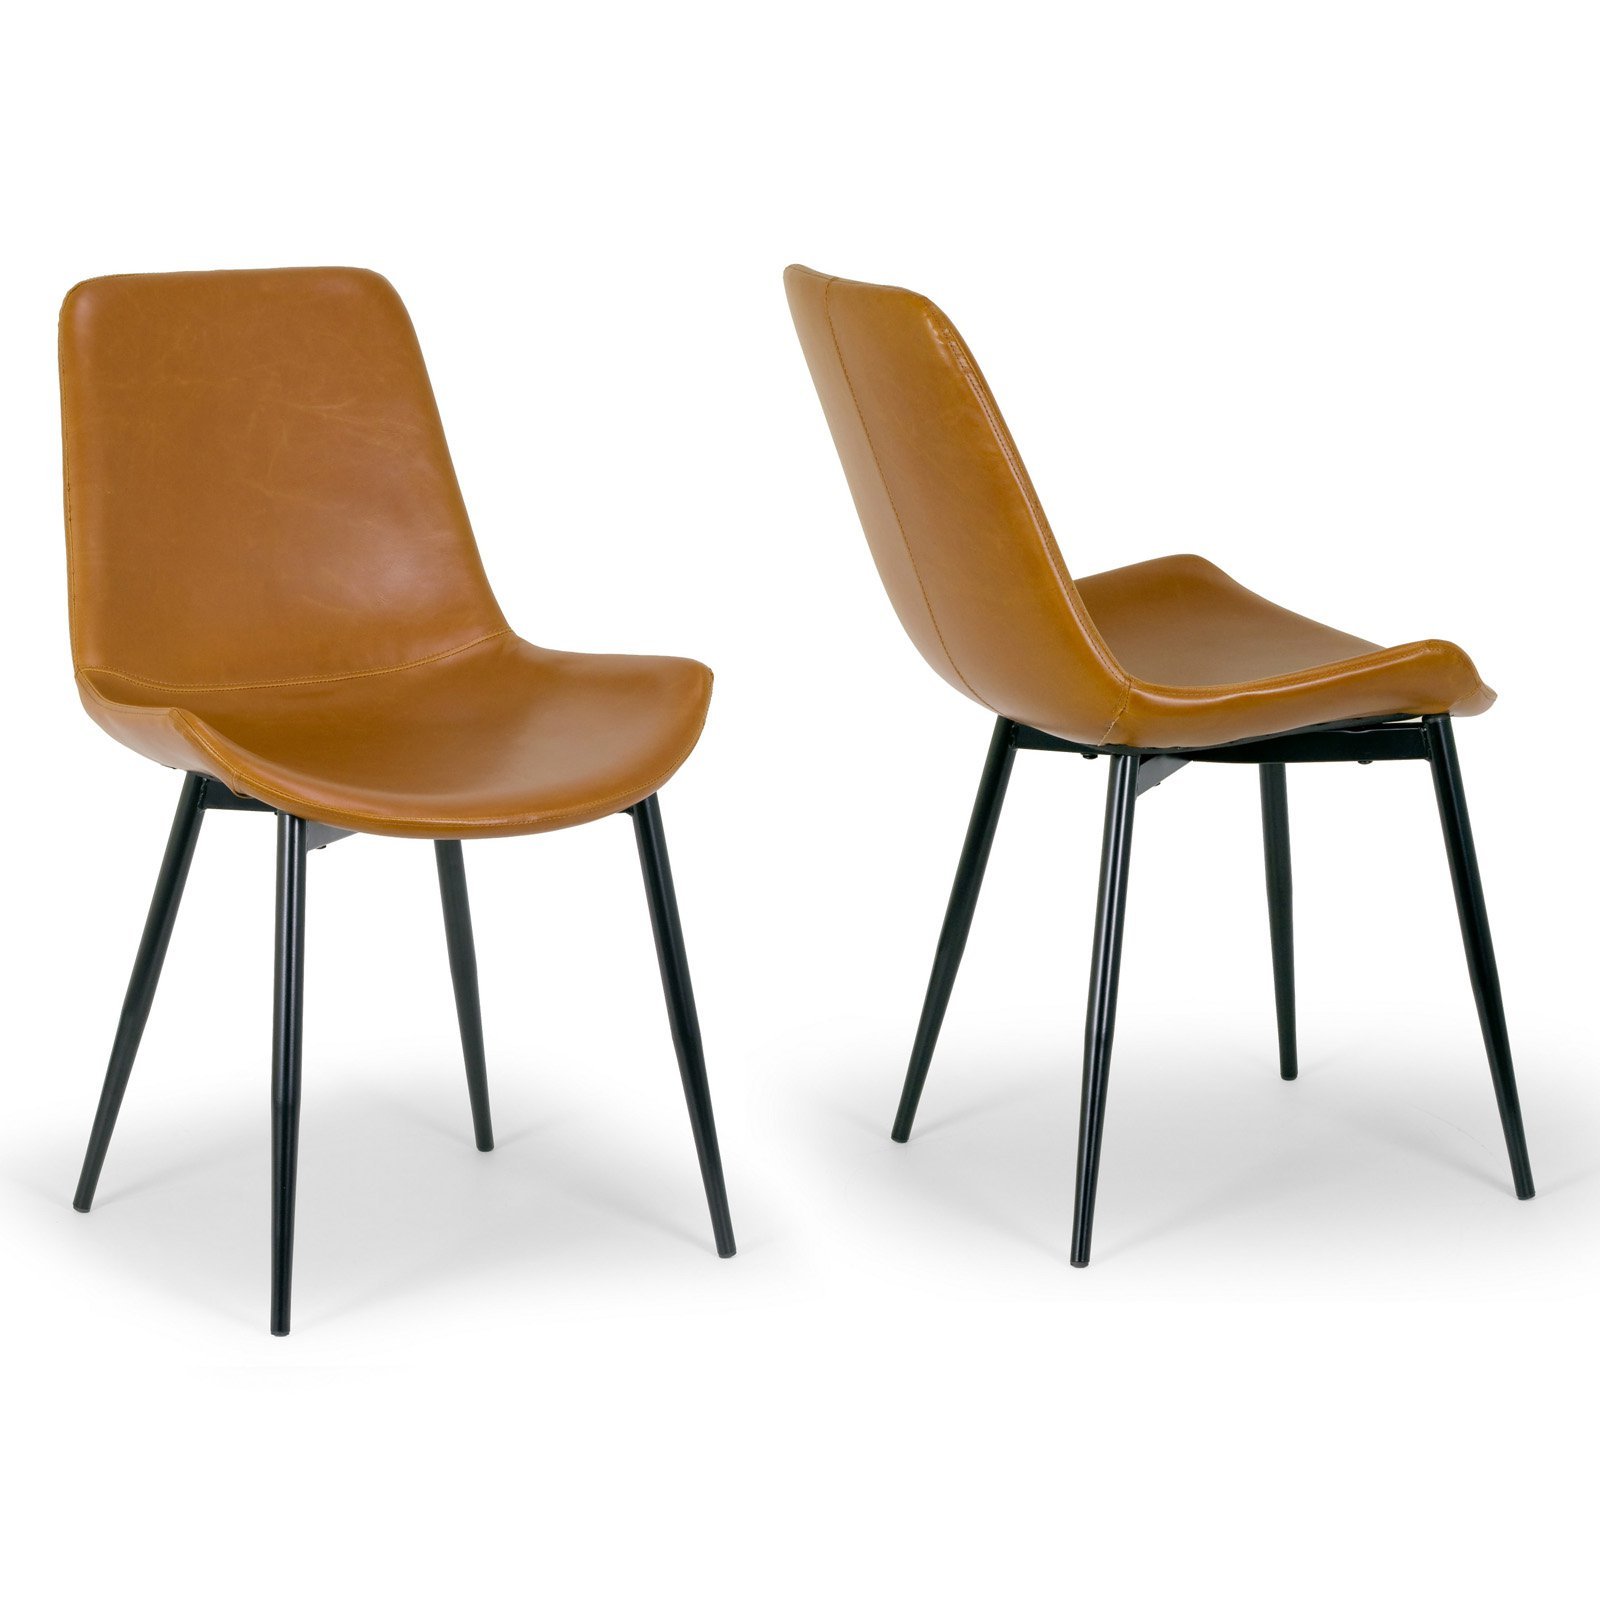 Set of 2 Alary Caramel Brown Faux Leather Modern Dining Chair with Black Iron Legs